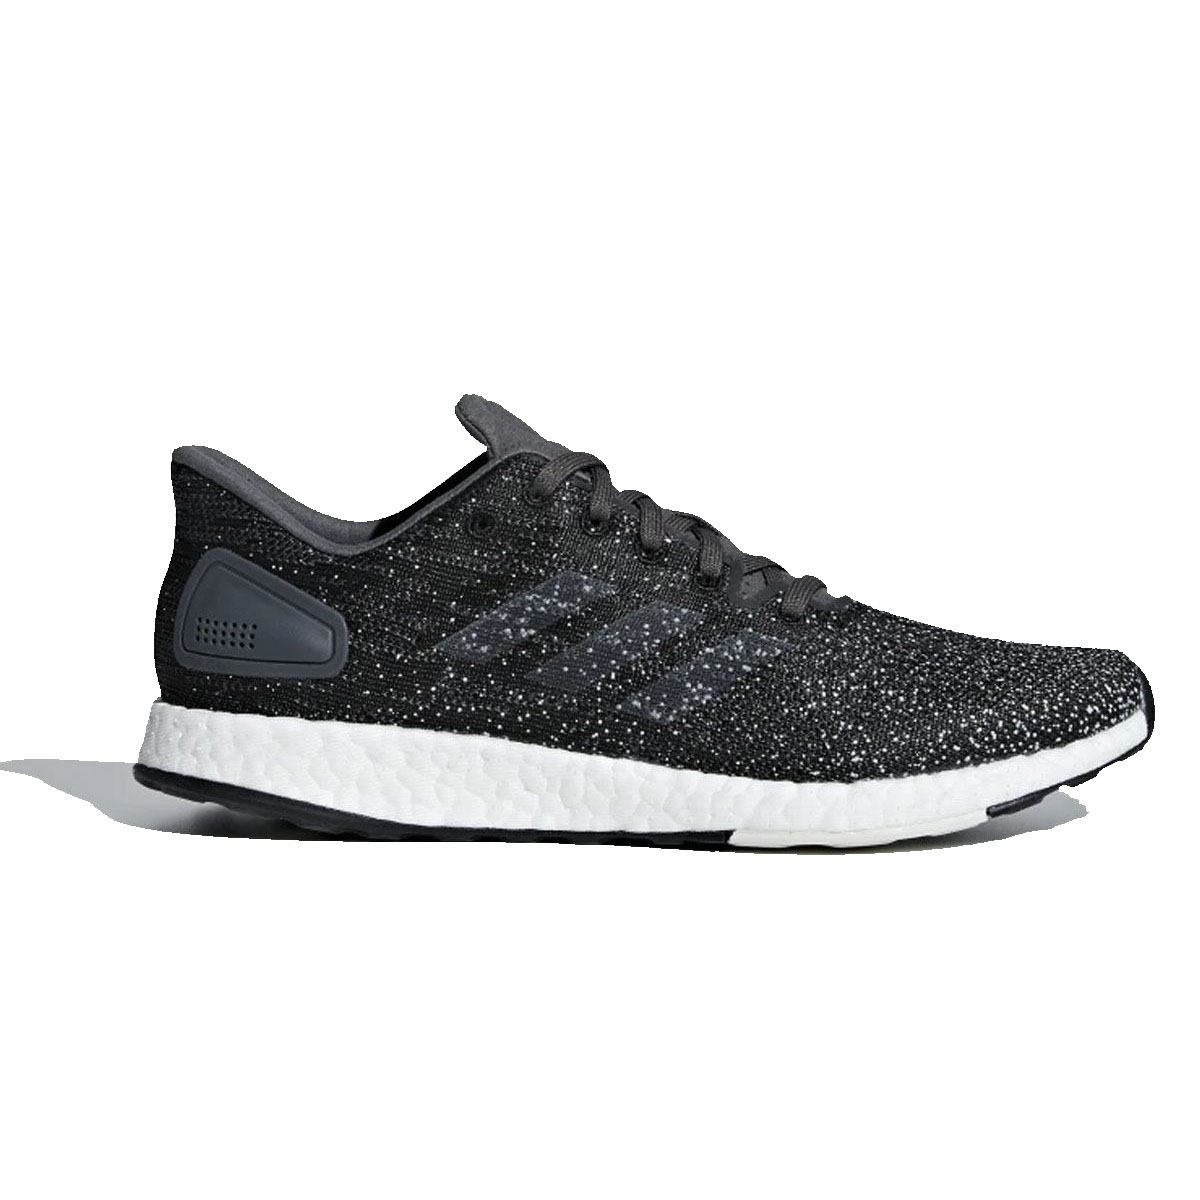 Tênis Adidas Pureboost DPR Feminino